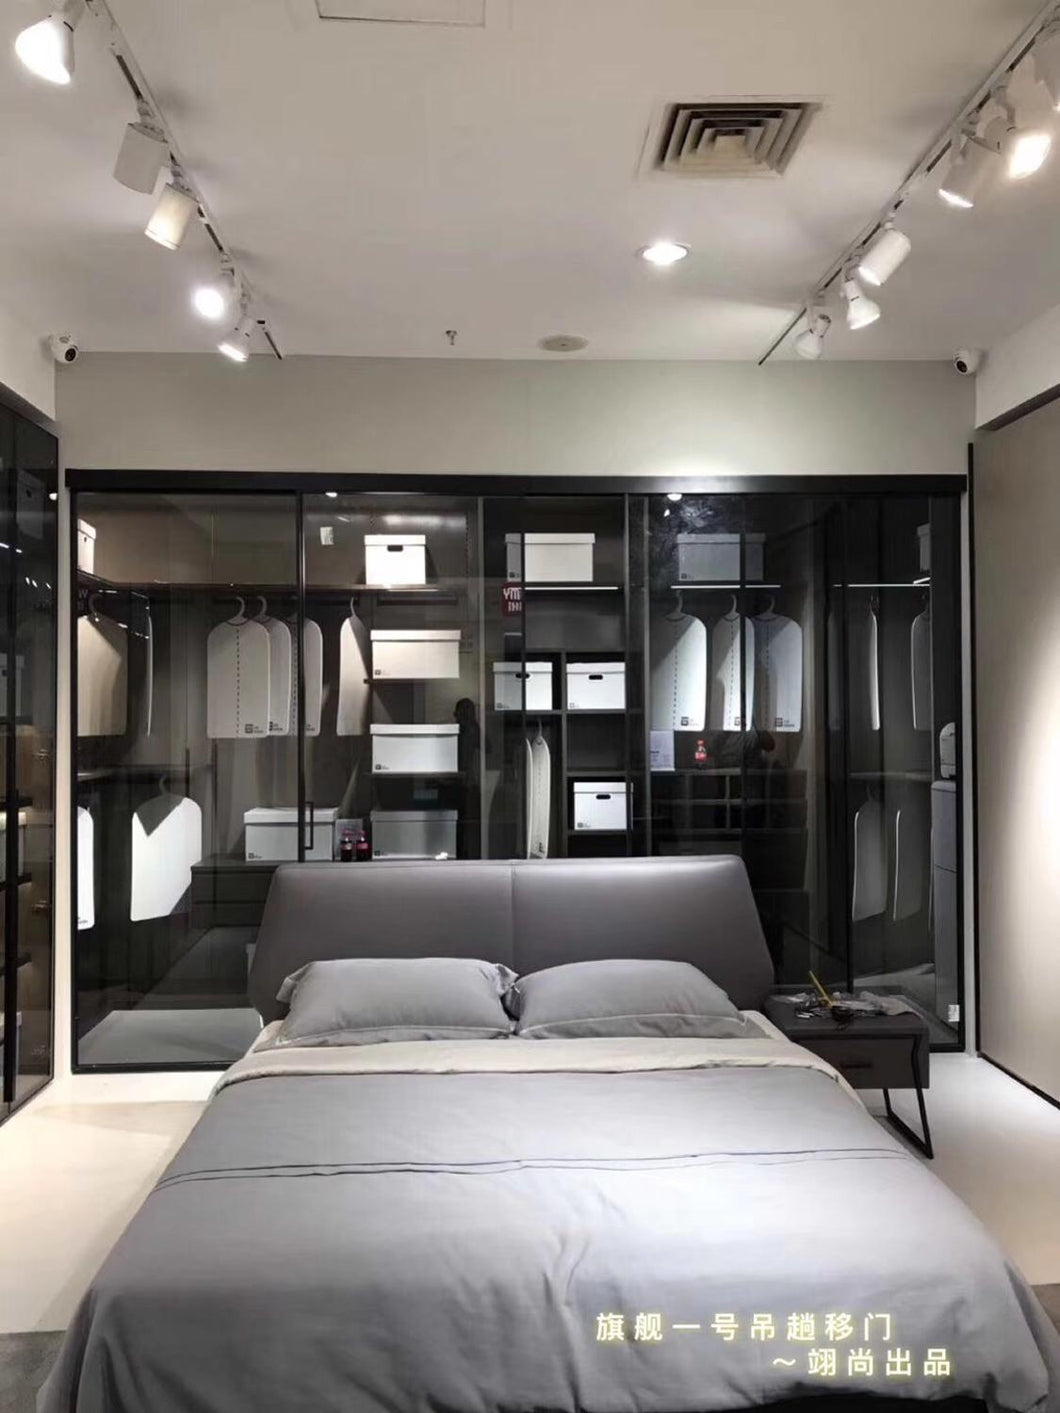 2020 walking closet china wood wardrobe modern wardrobe open bedroom dressing room walking room customized - LikeRE Marketplace